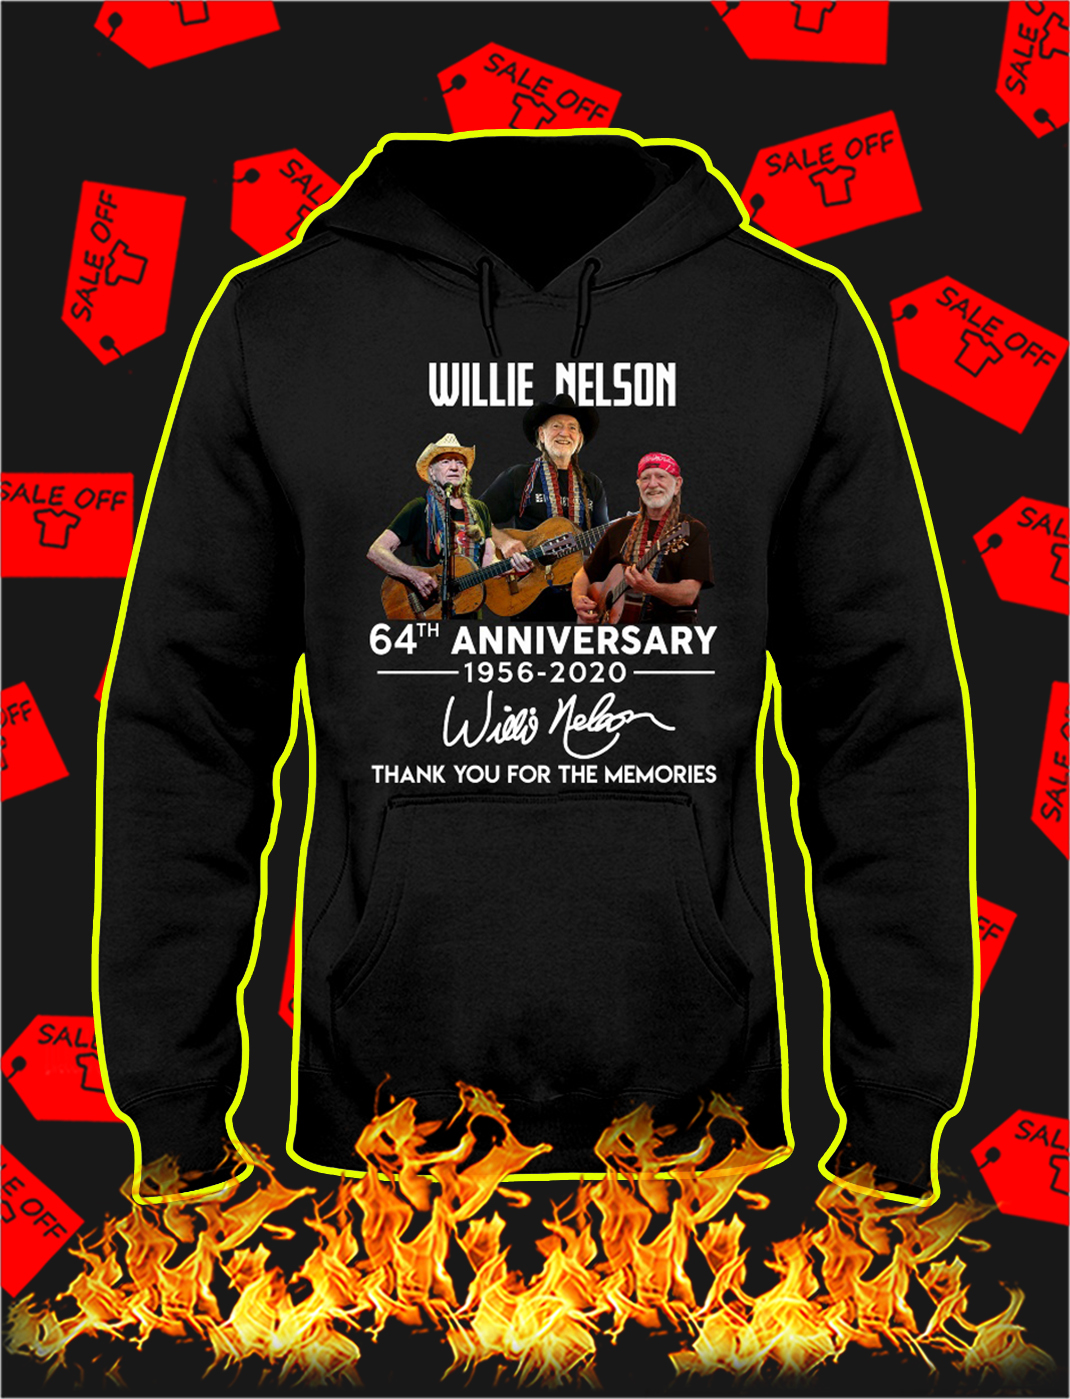 Willie nelson 64th anniversary thank you for the memories hoodie